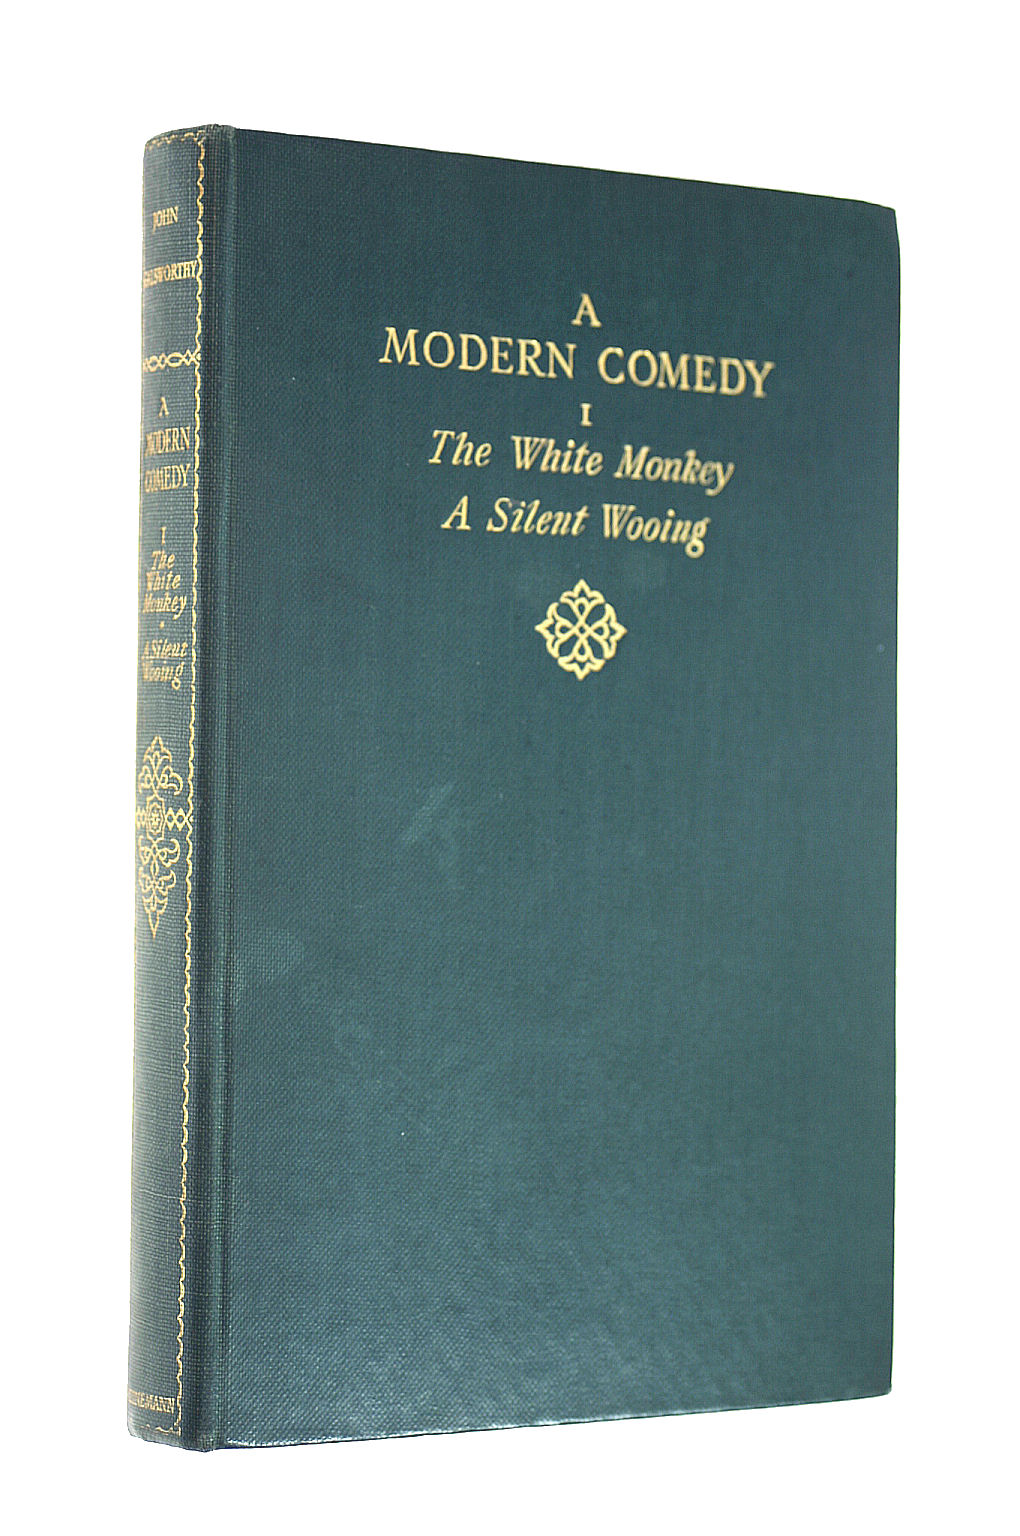 Image for A Modern Comedy Volume I : The White Monkey and a Silent Wooing